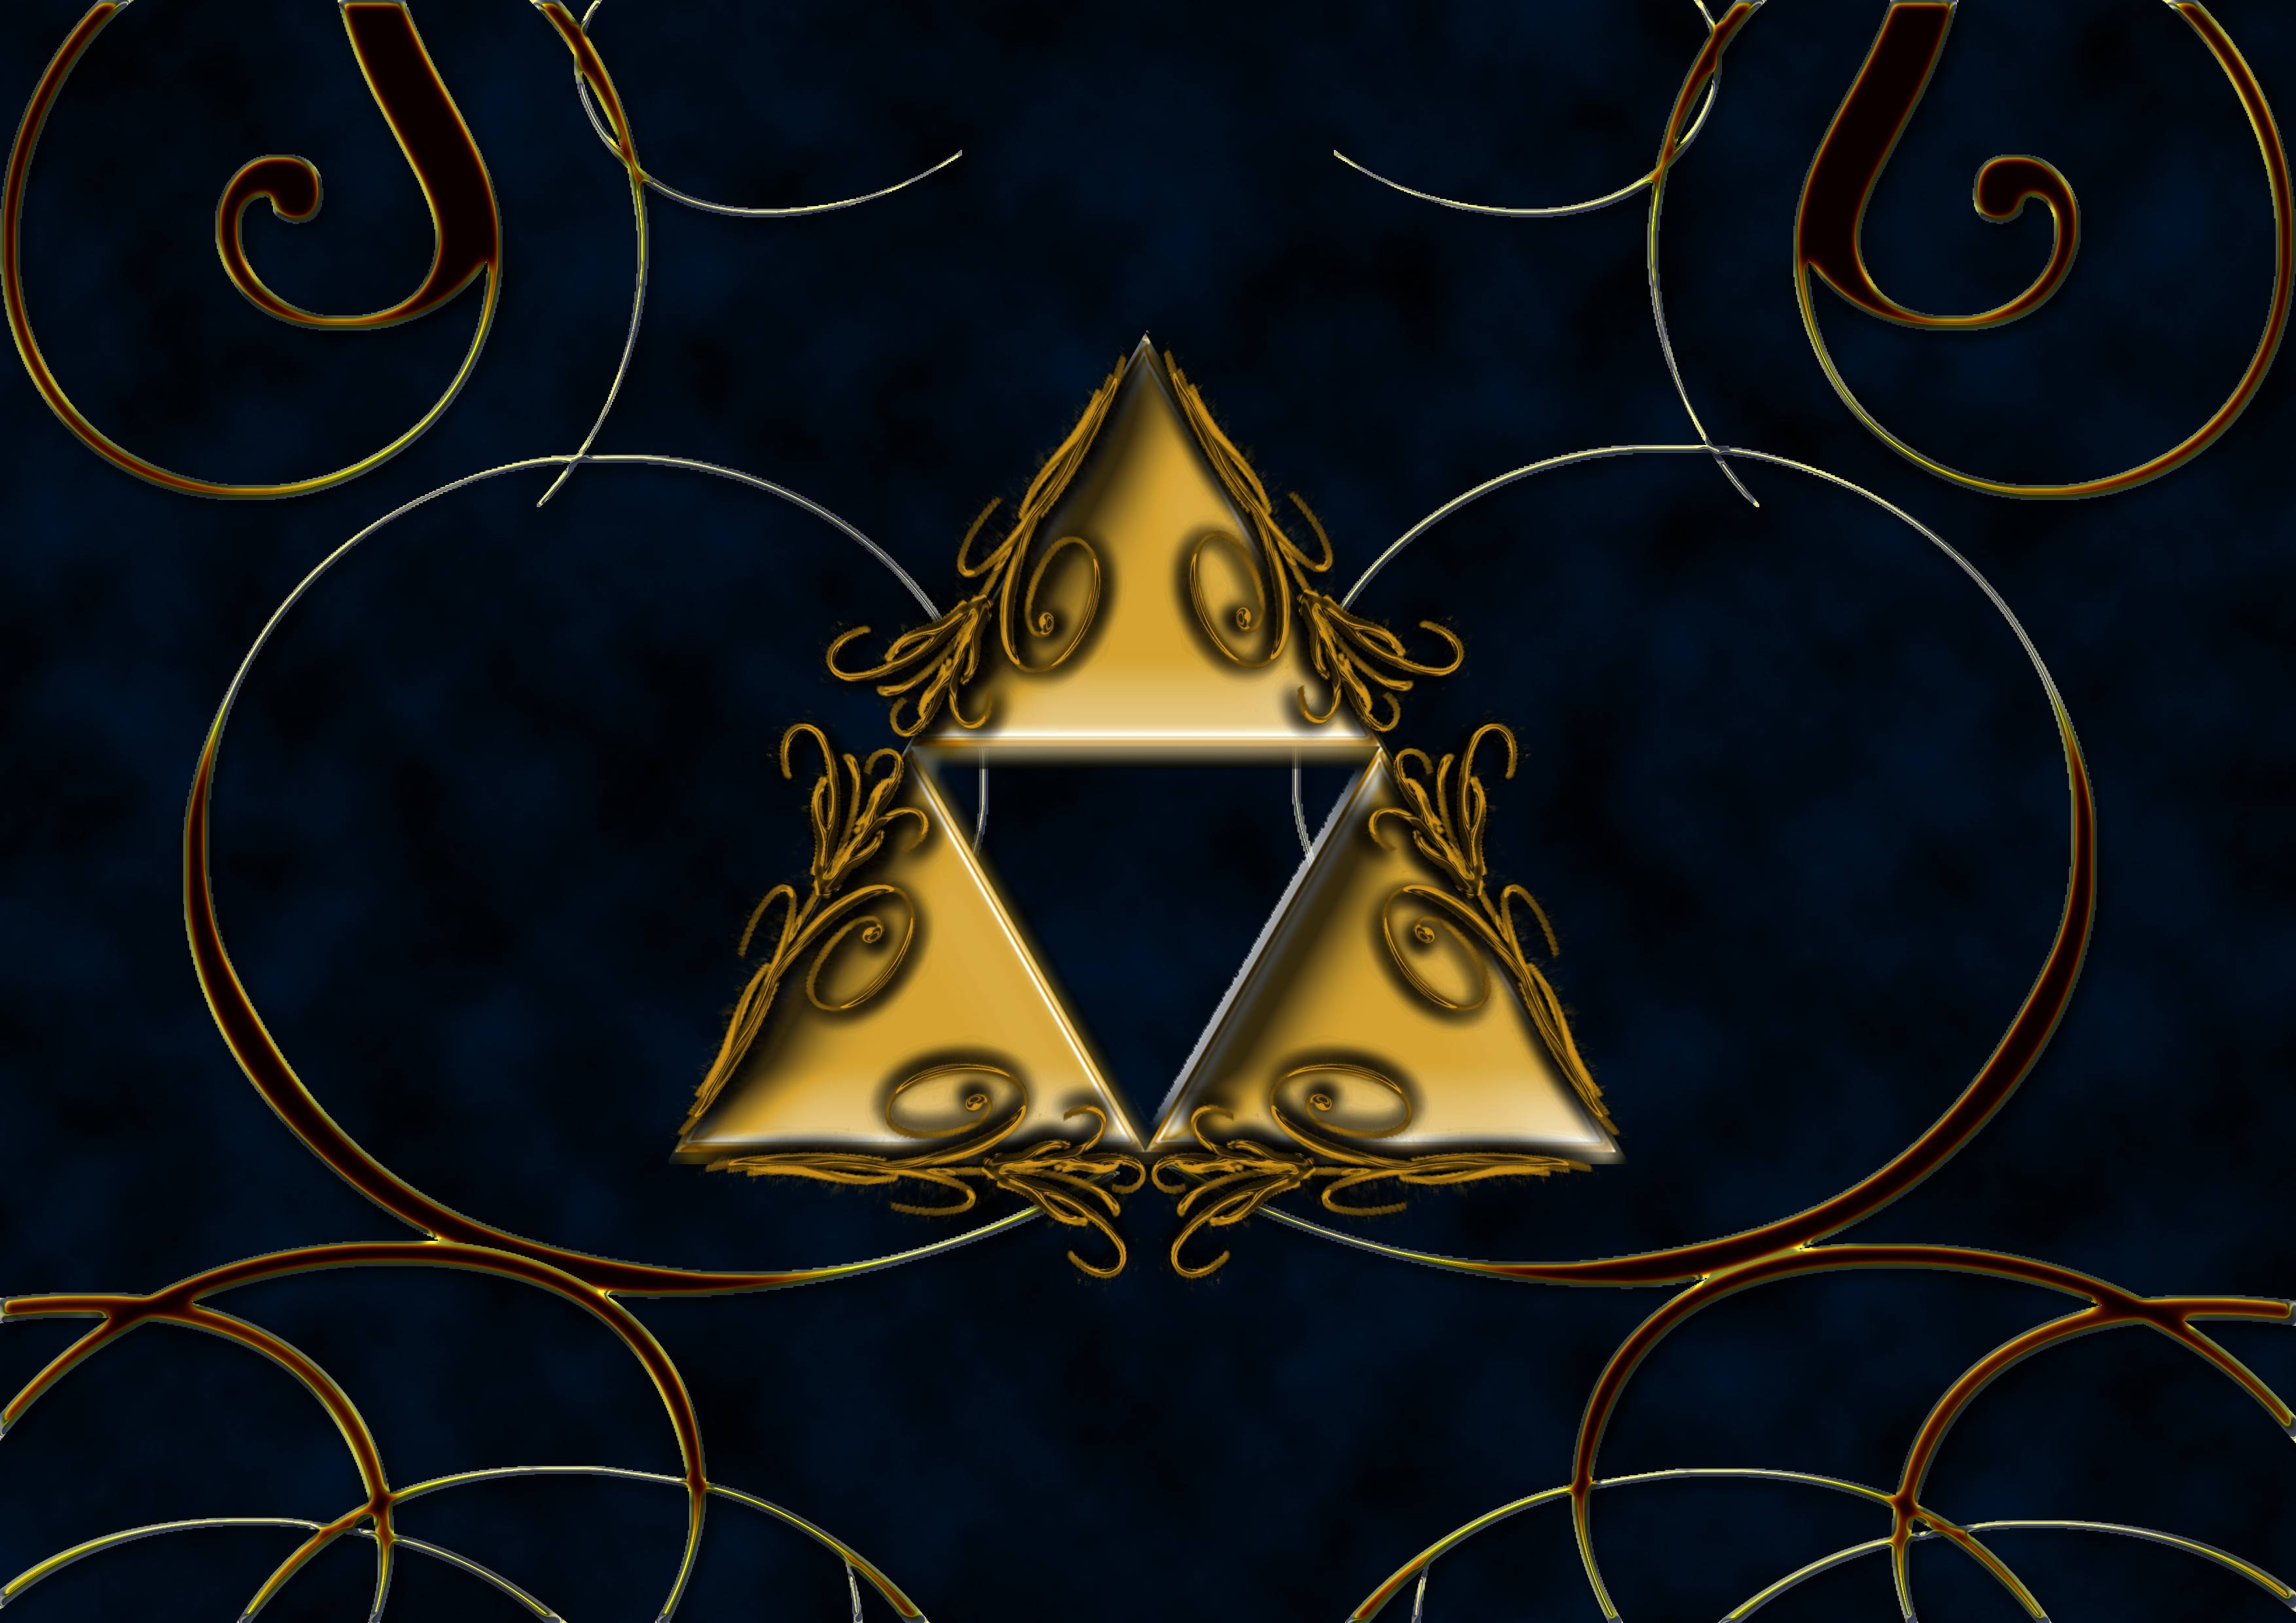 Image For > Black Triforce Wallpapers